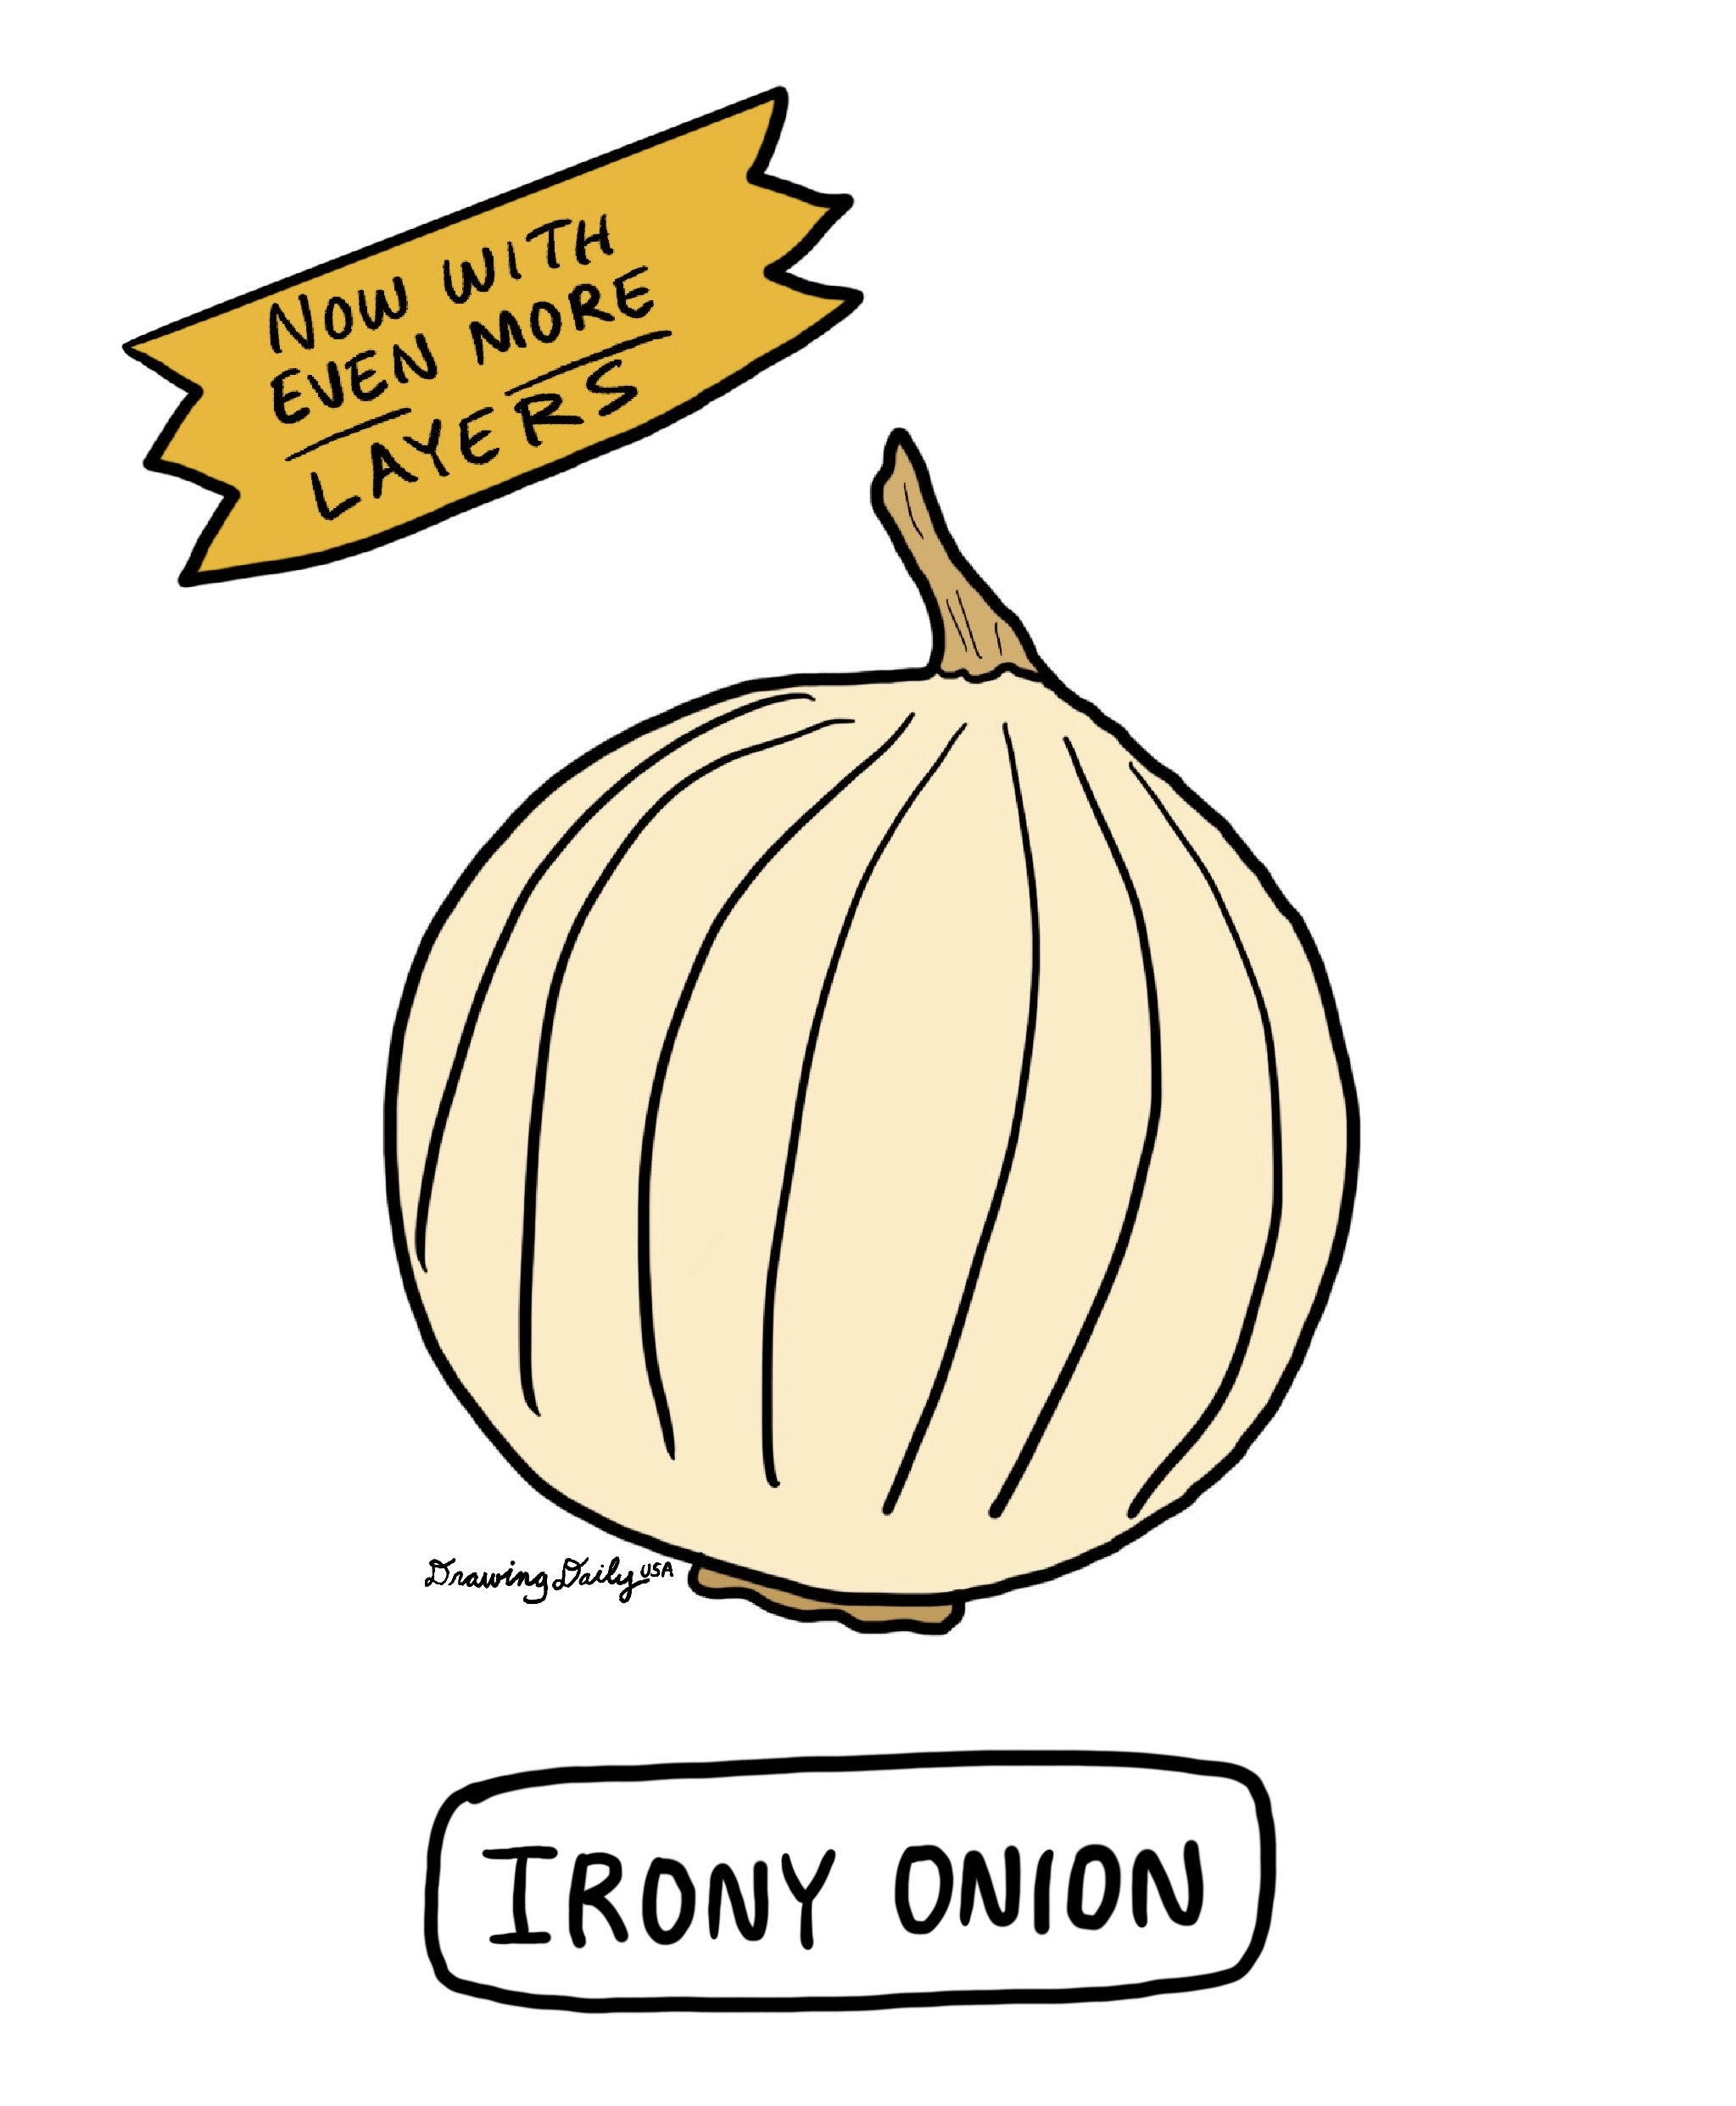 Onion of Irony